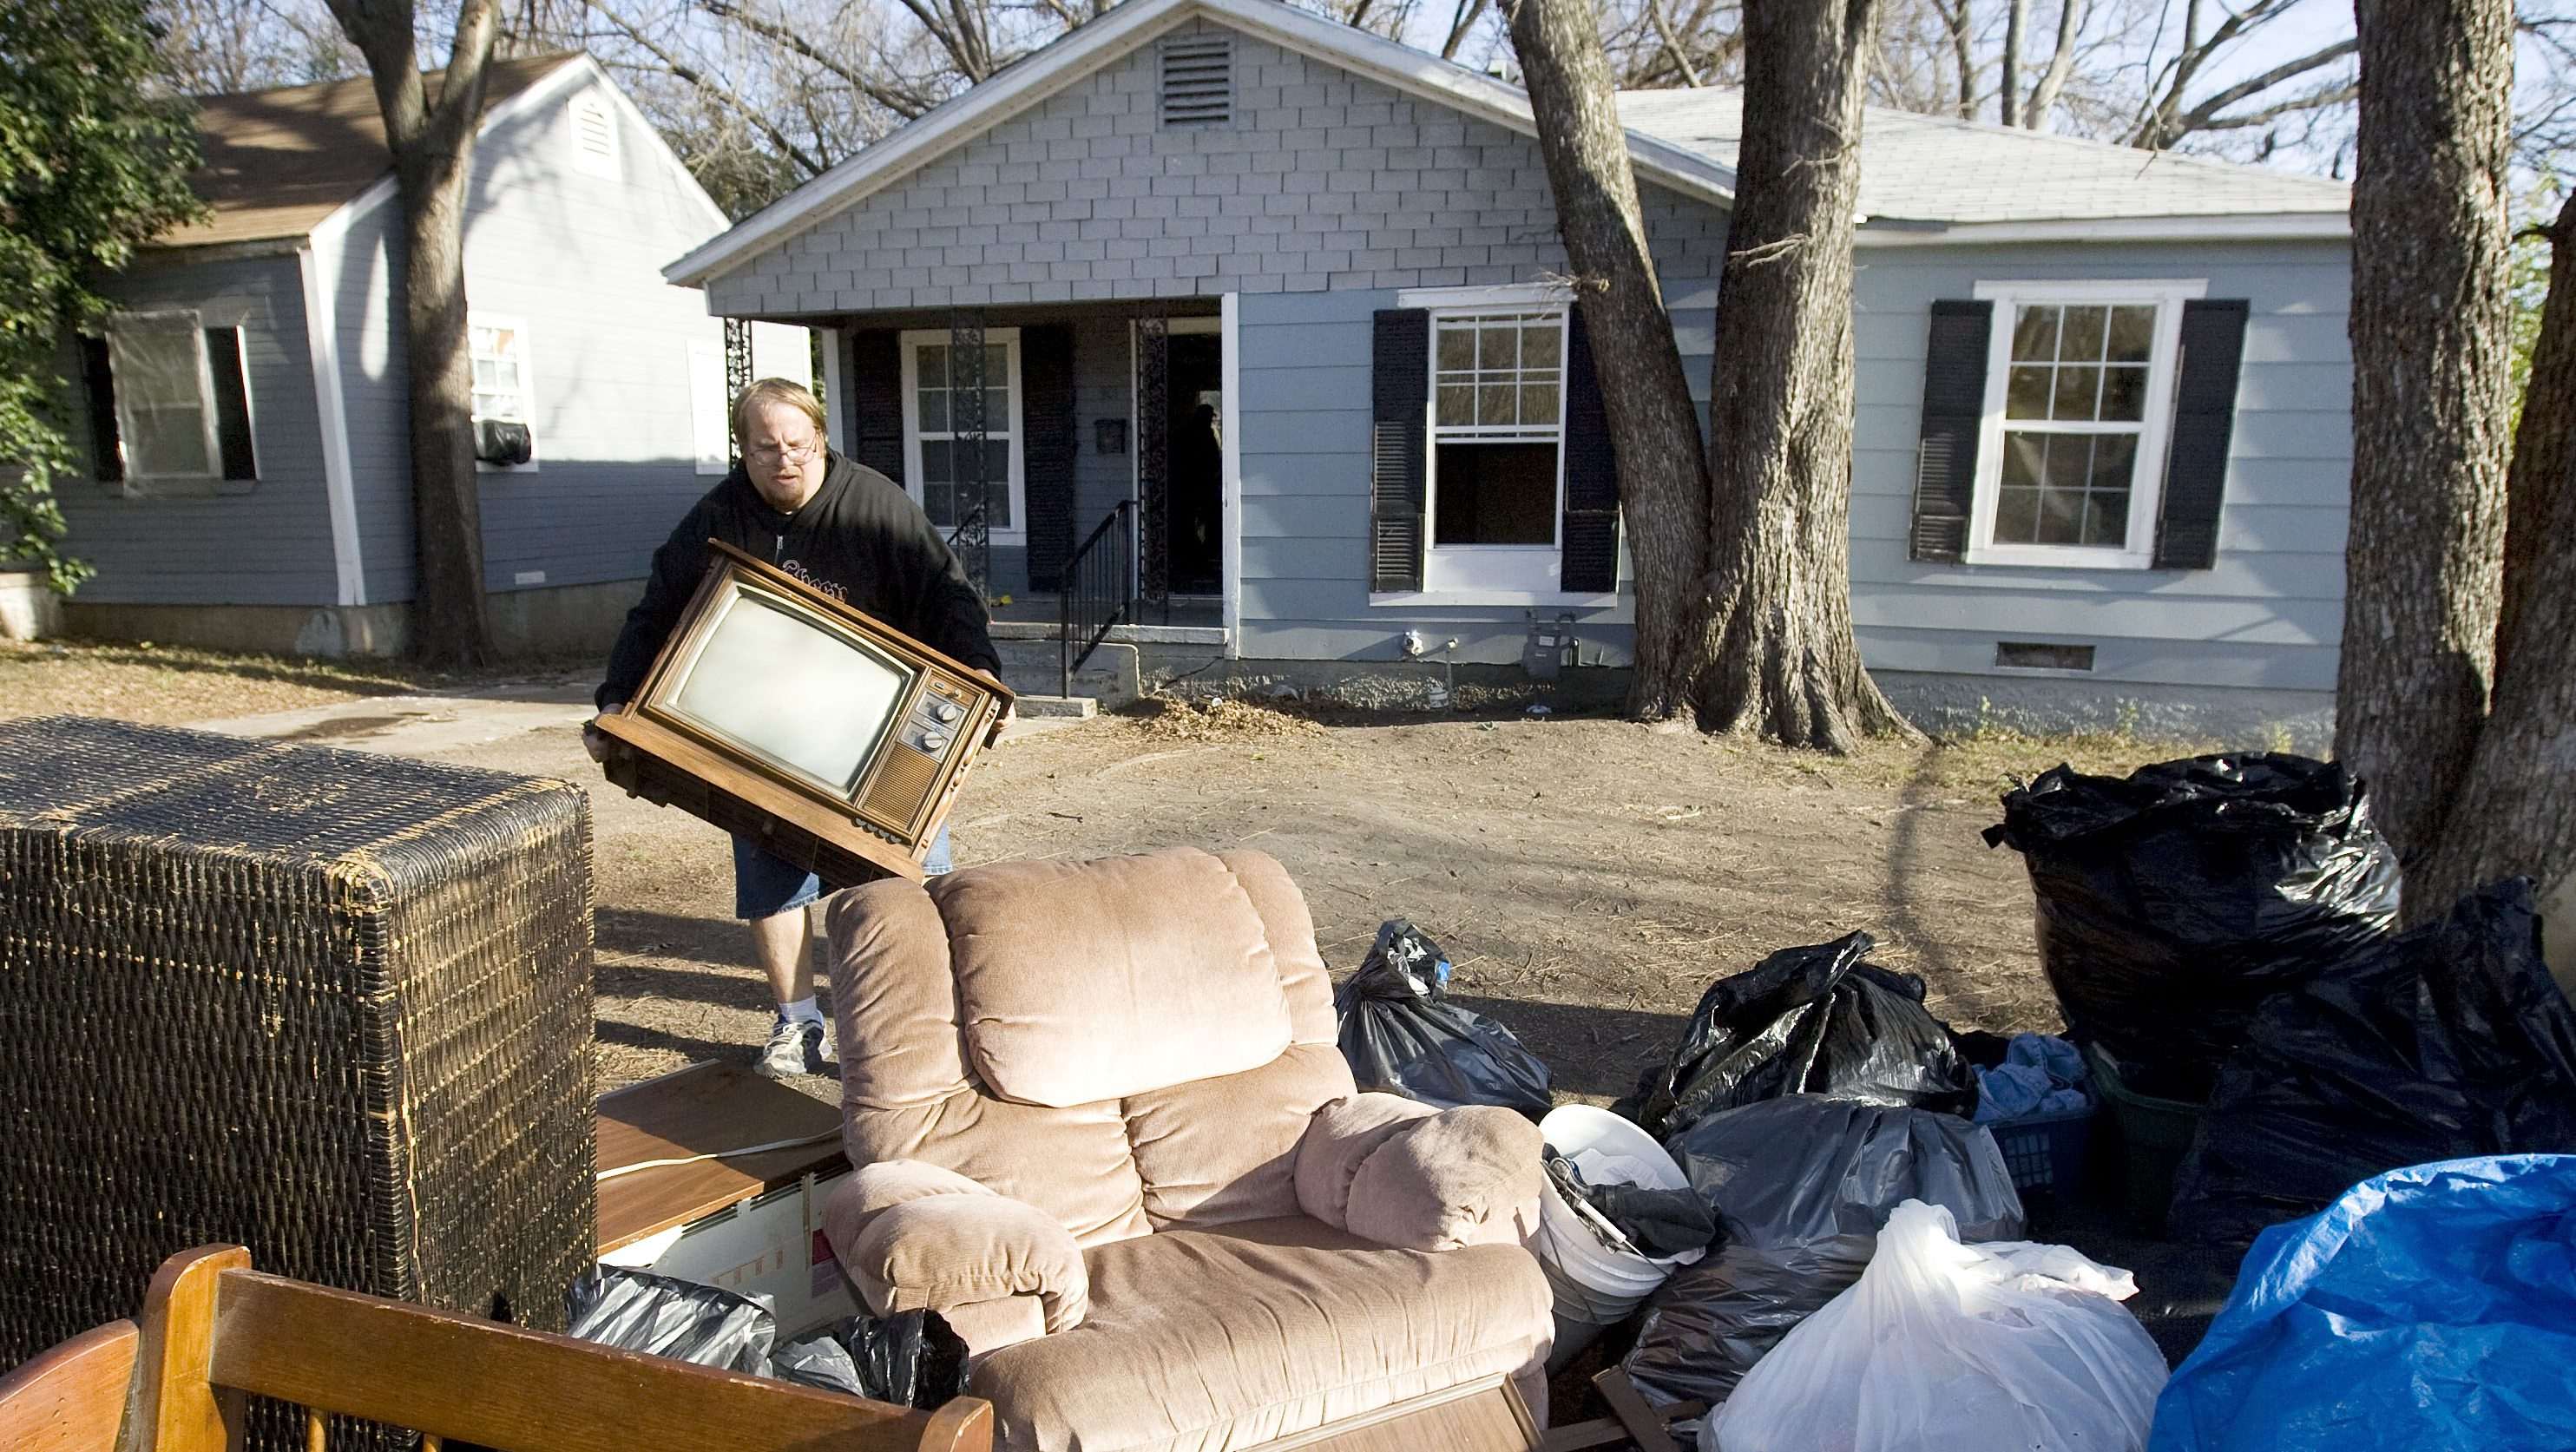 Family belongings put on curb during eviction proceeding from house in Waco, Texas